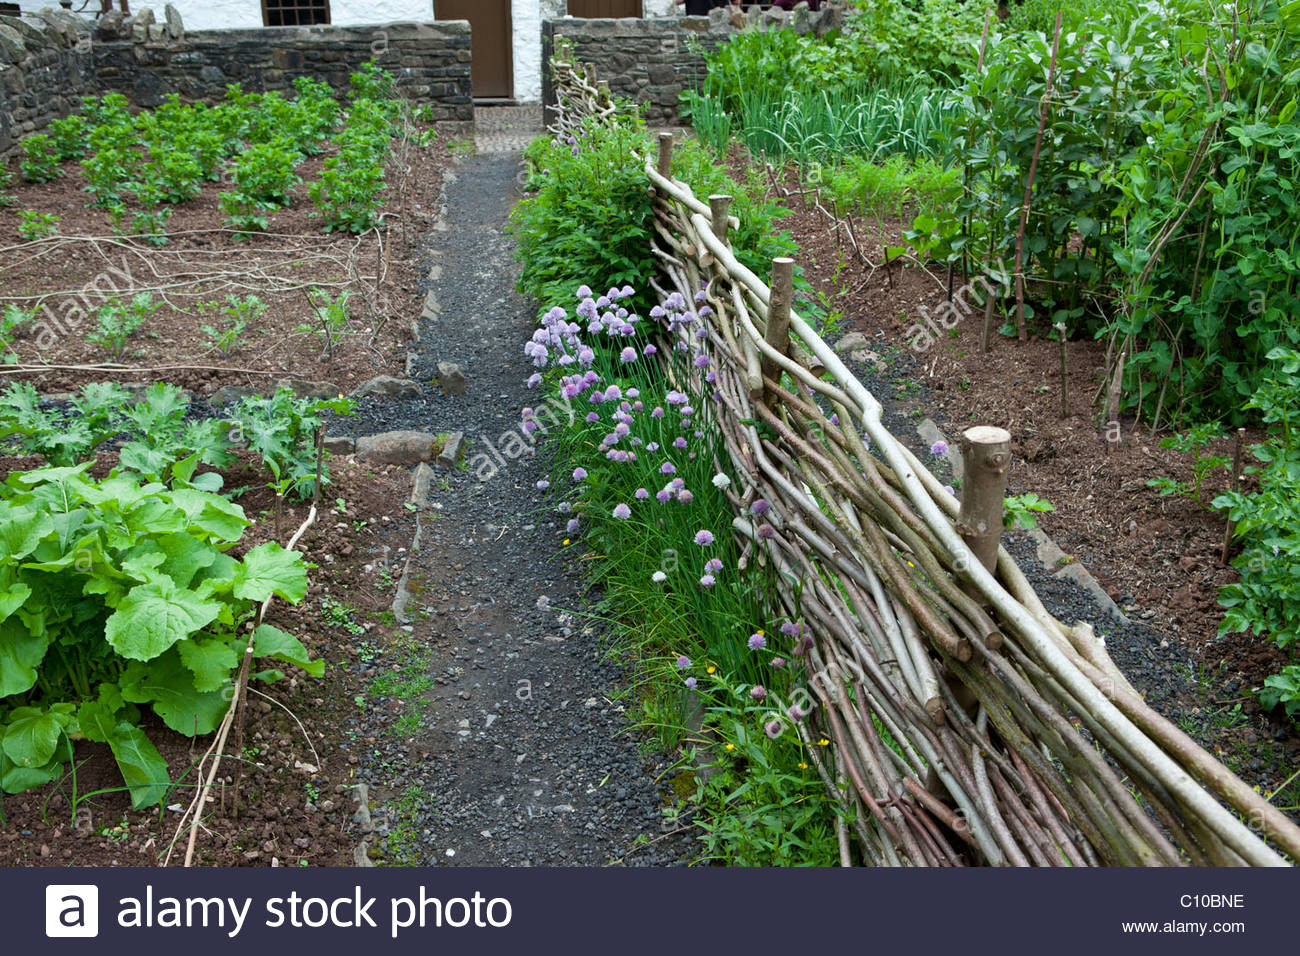 Small, neat vegetable garden - Stock Image